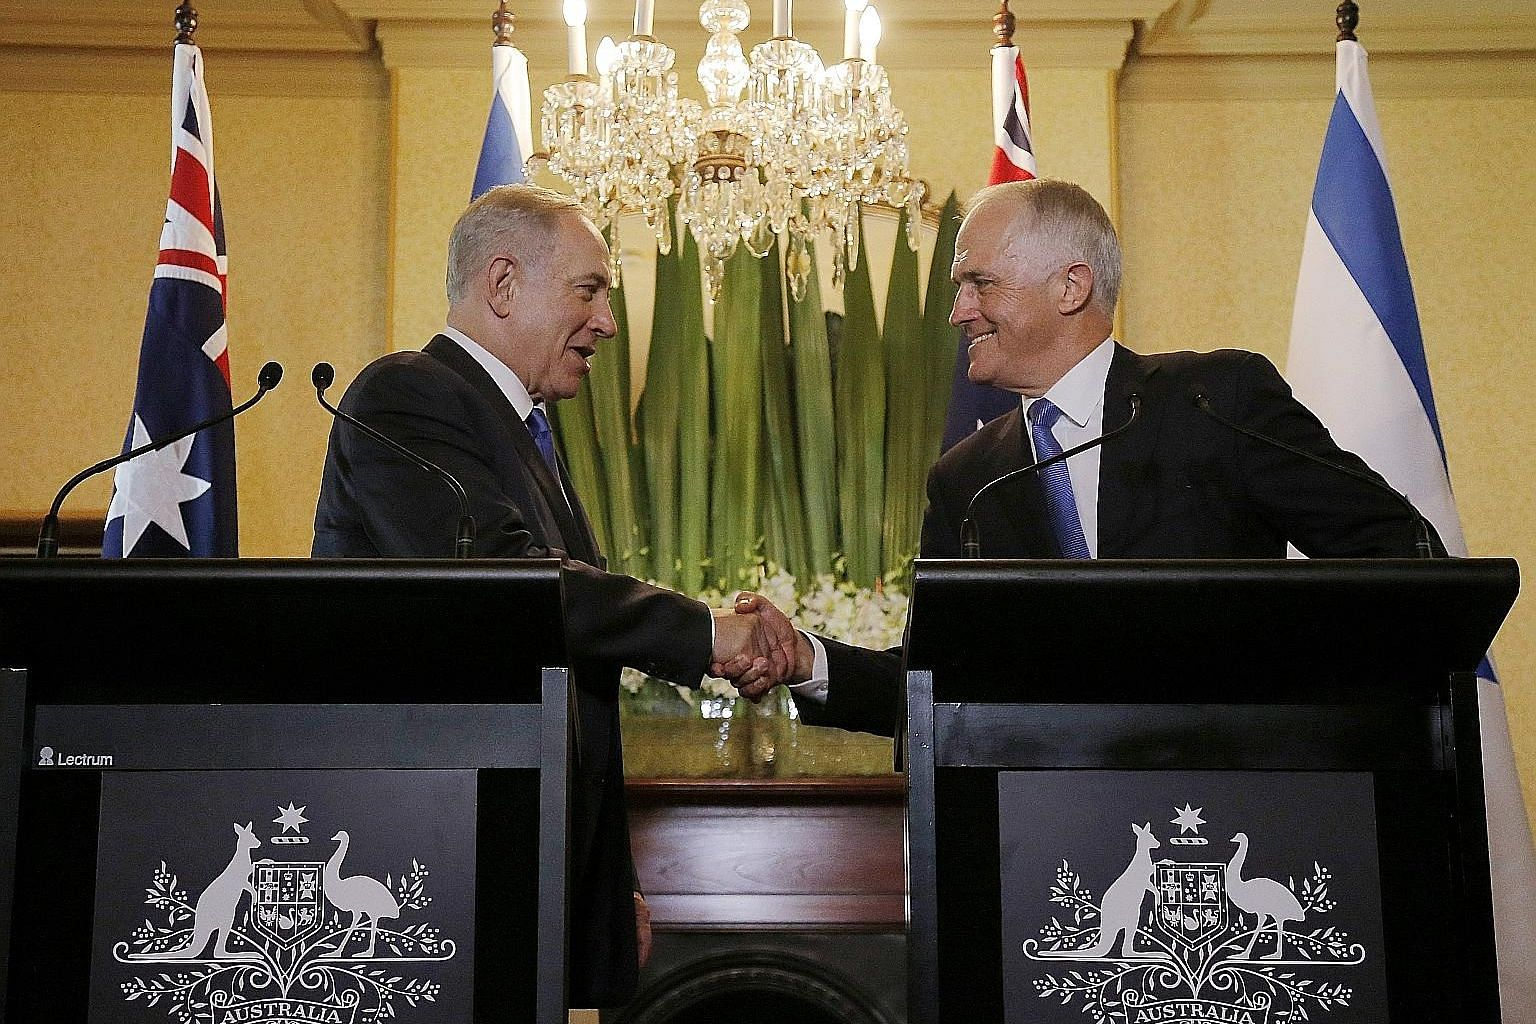 Mr Netanyahu (far left) and Mr Turnbull at their joint press conference in Sydney yesterday. The Israeli PM is on a four-day visit to Australia.